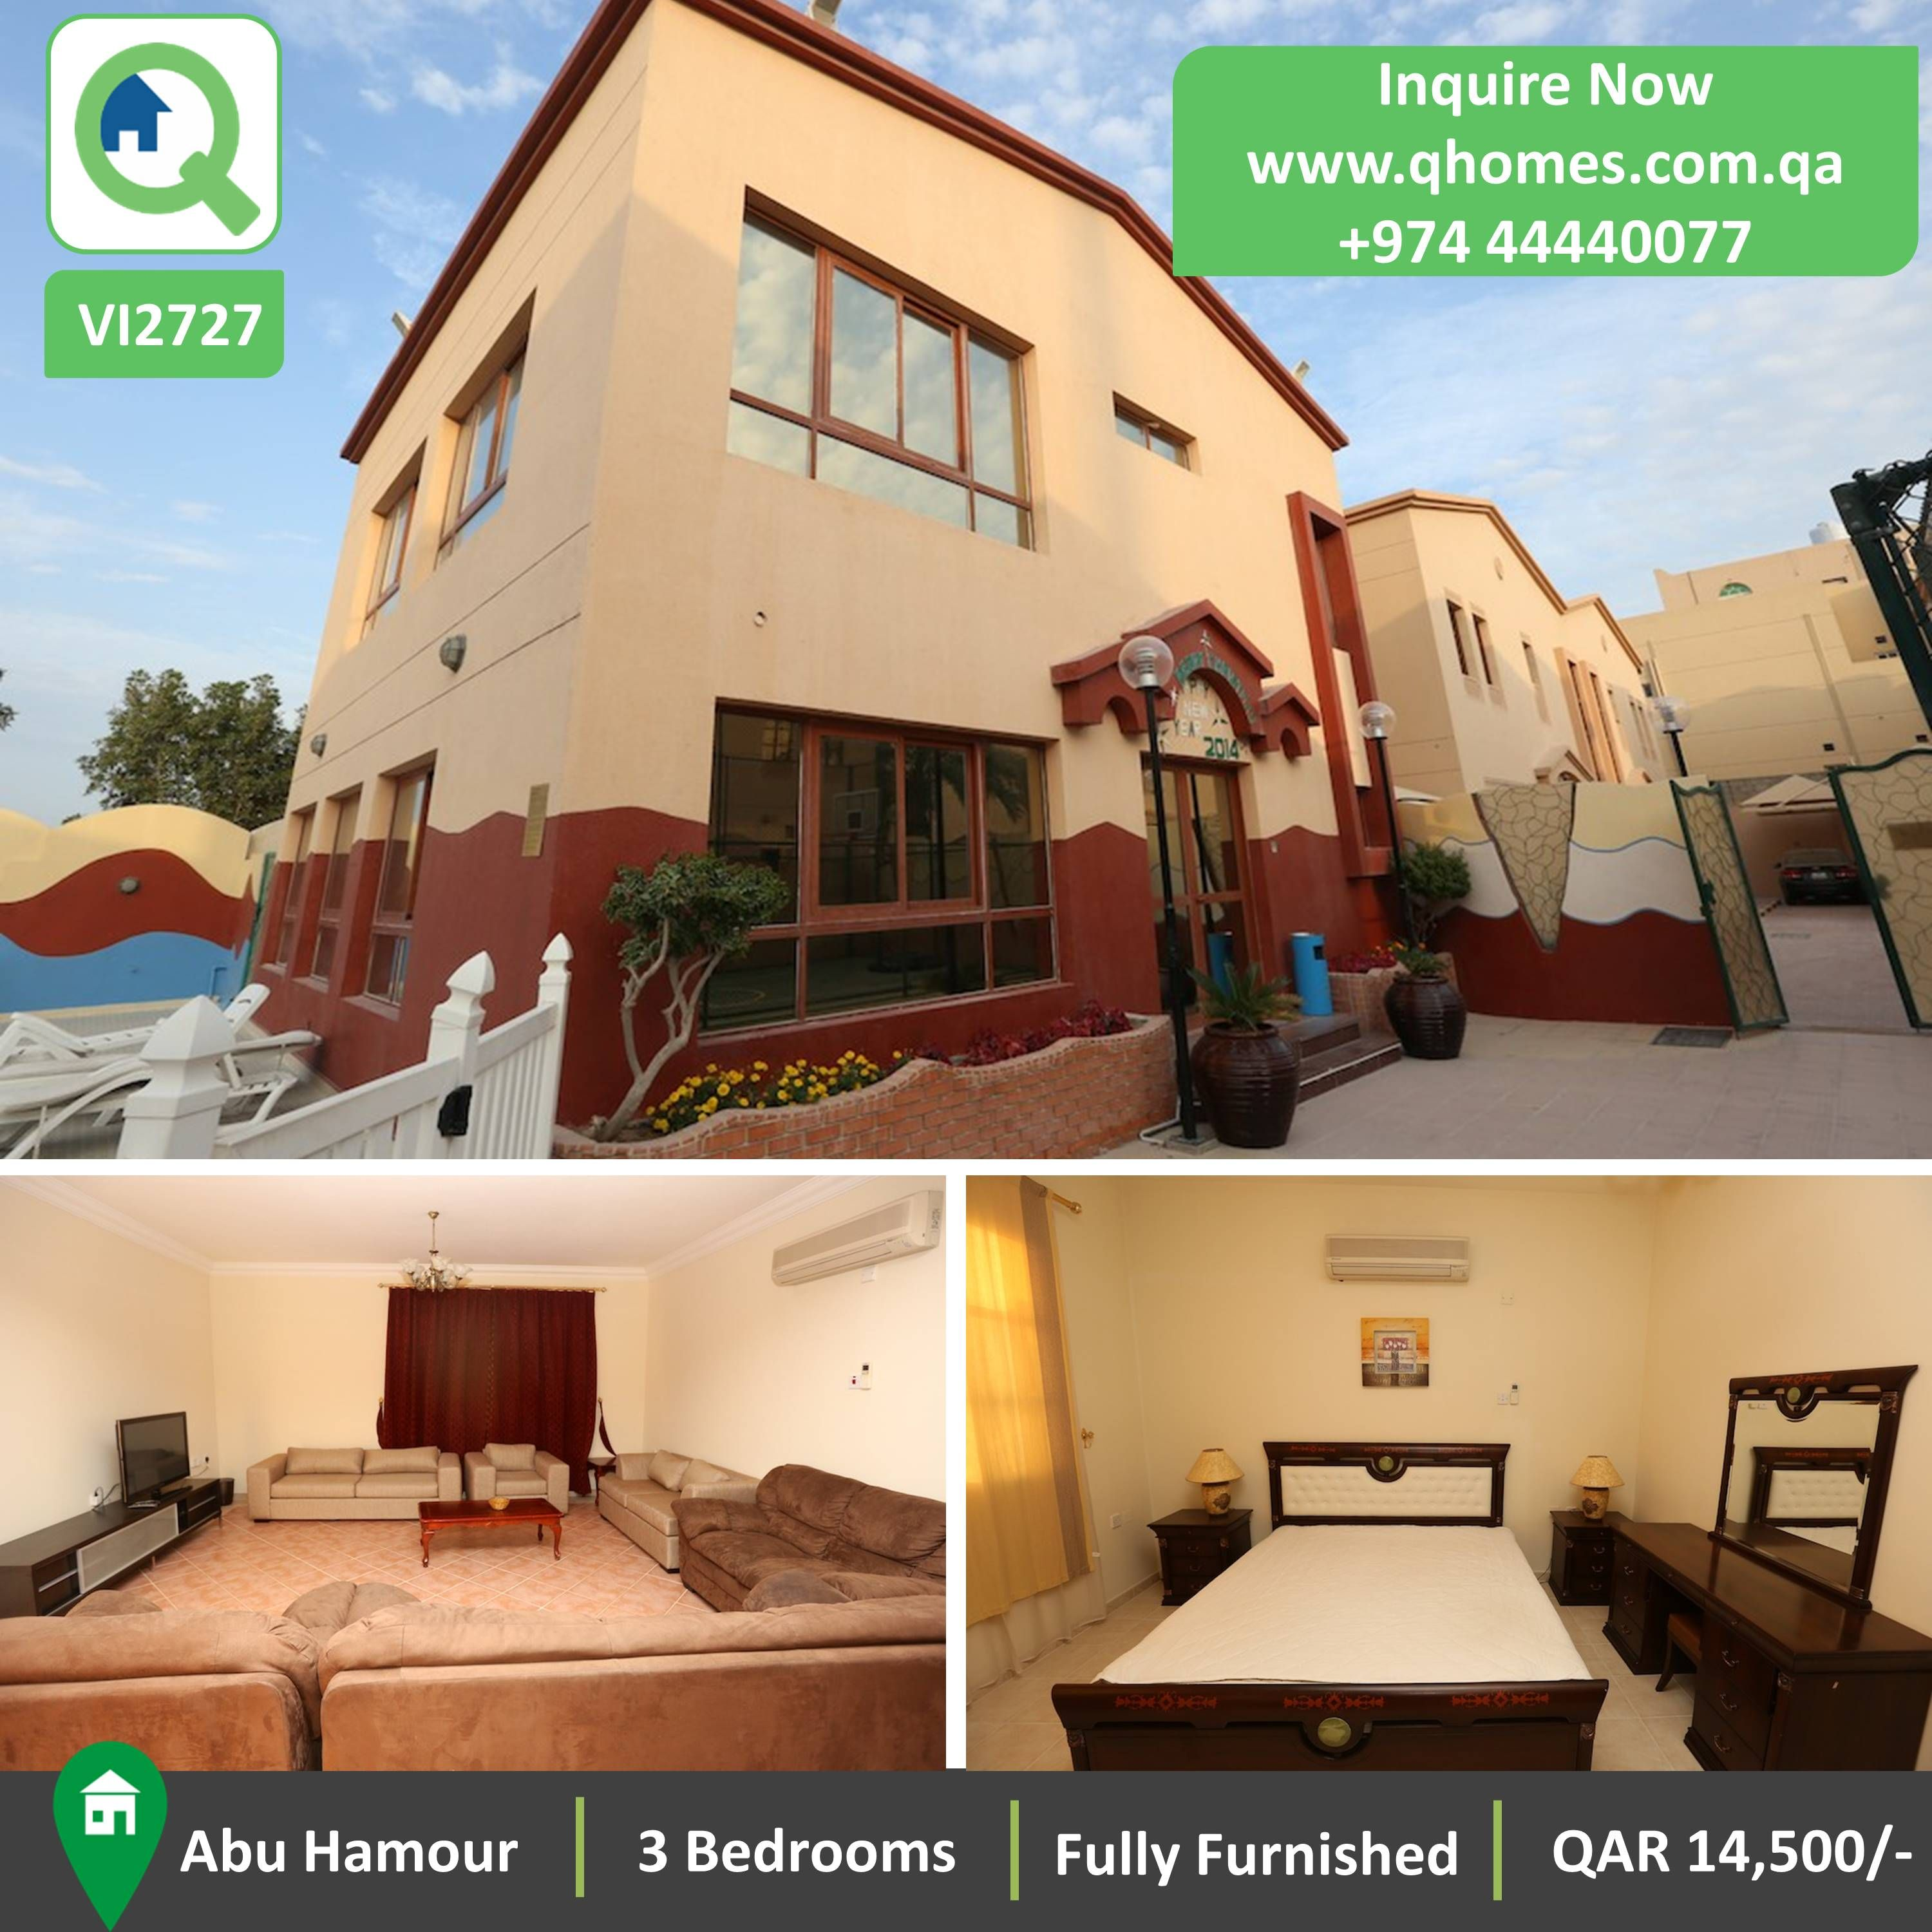 Villa For Rent In Qatar: Huge And Luxurious Fully